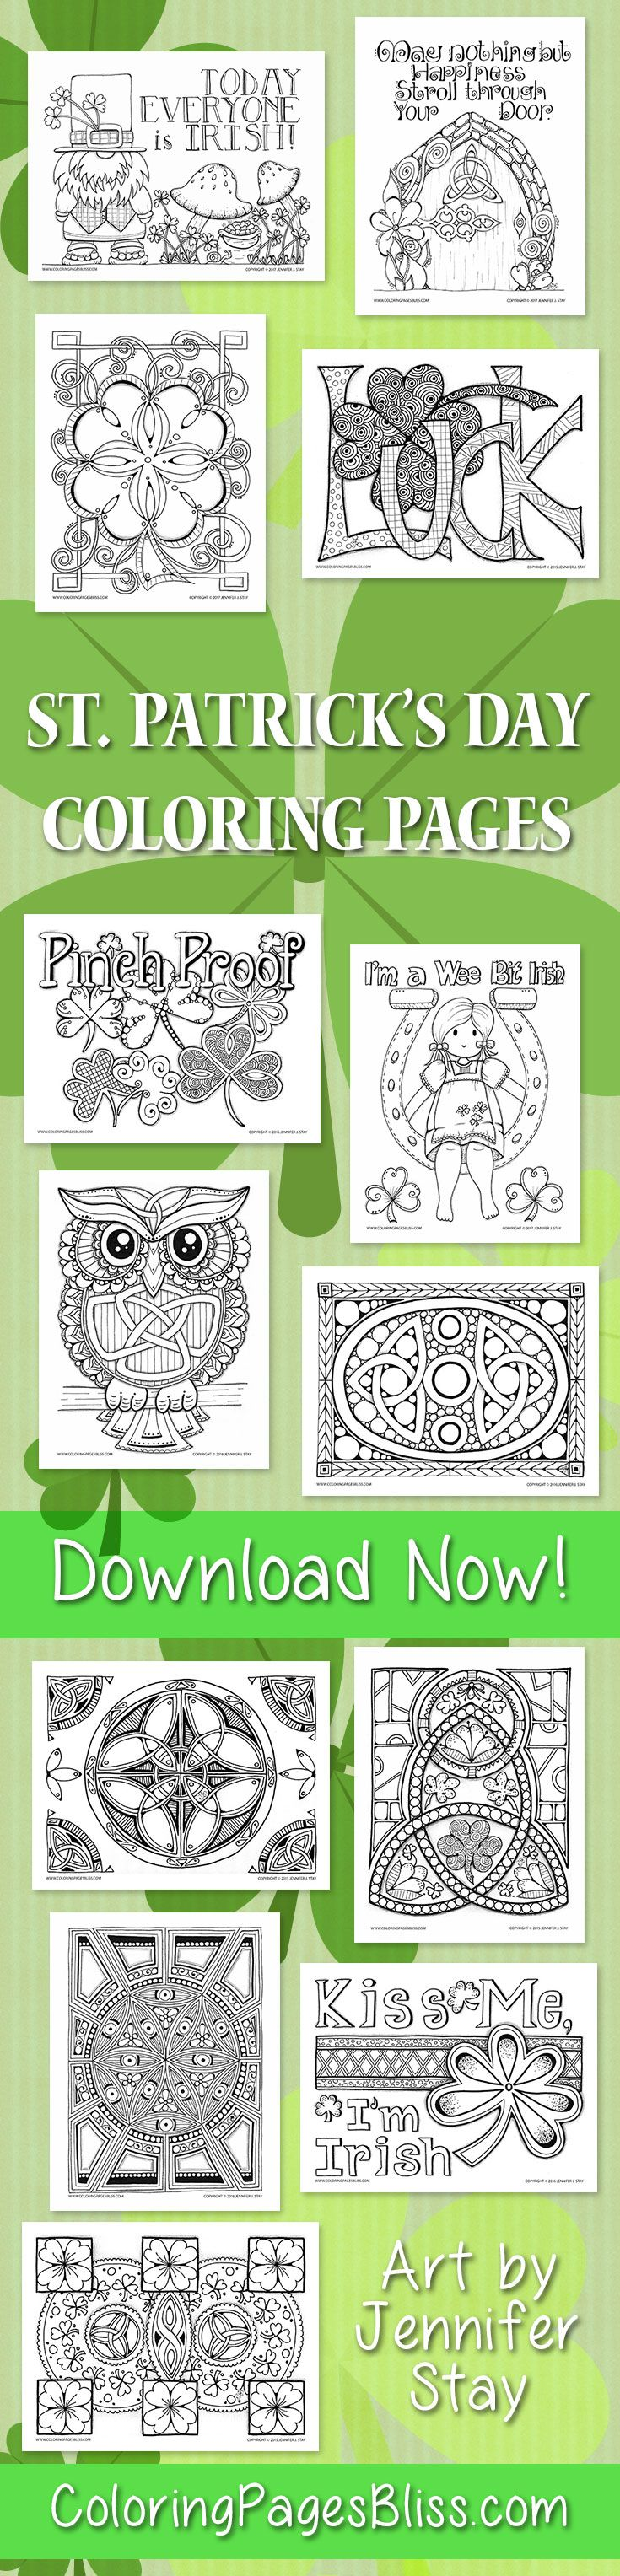 Best 500+ Adult Coloring Pages images on Pinterest | Adult coloring ...